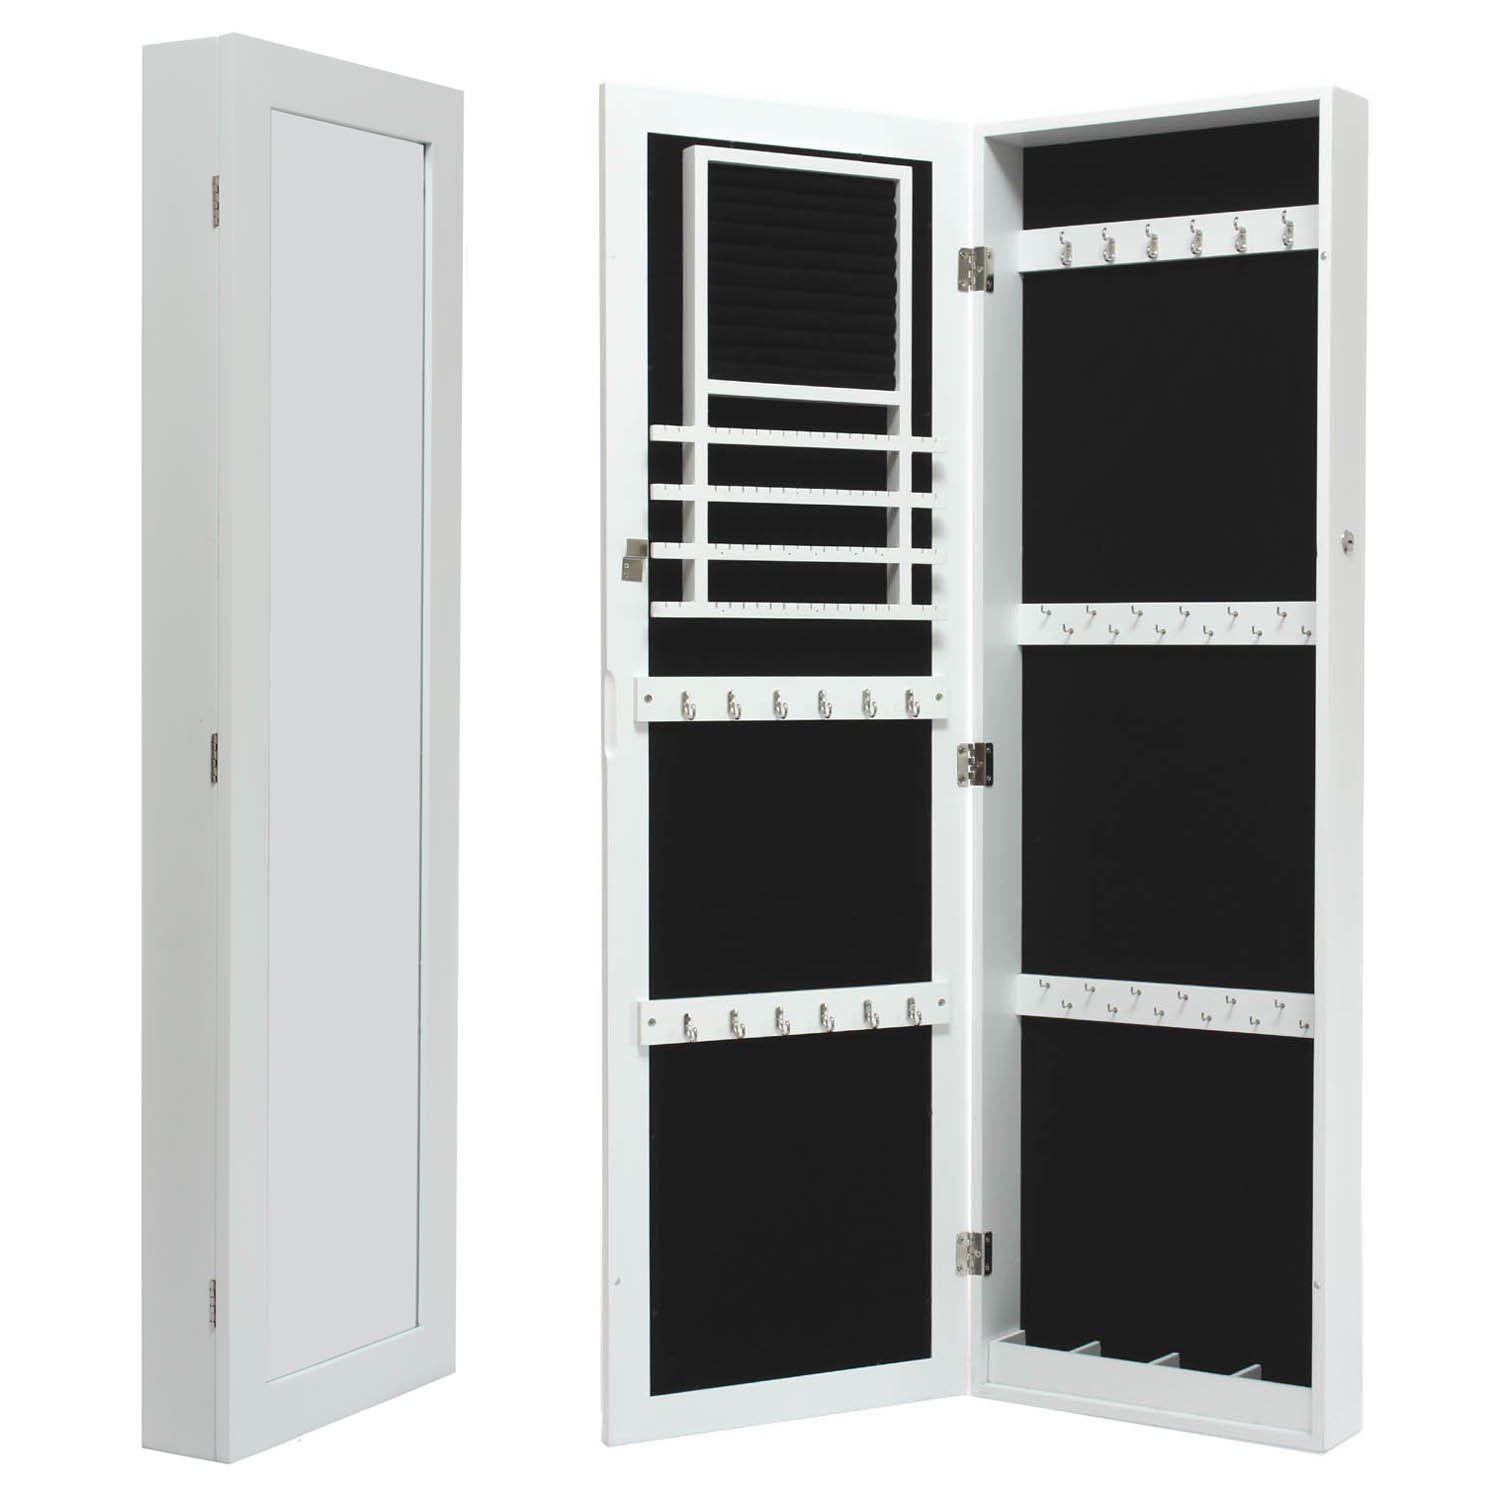 White Mirrored Jewelry Cabinet Armoire Wall Door Mount Organizer